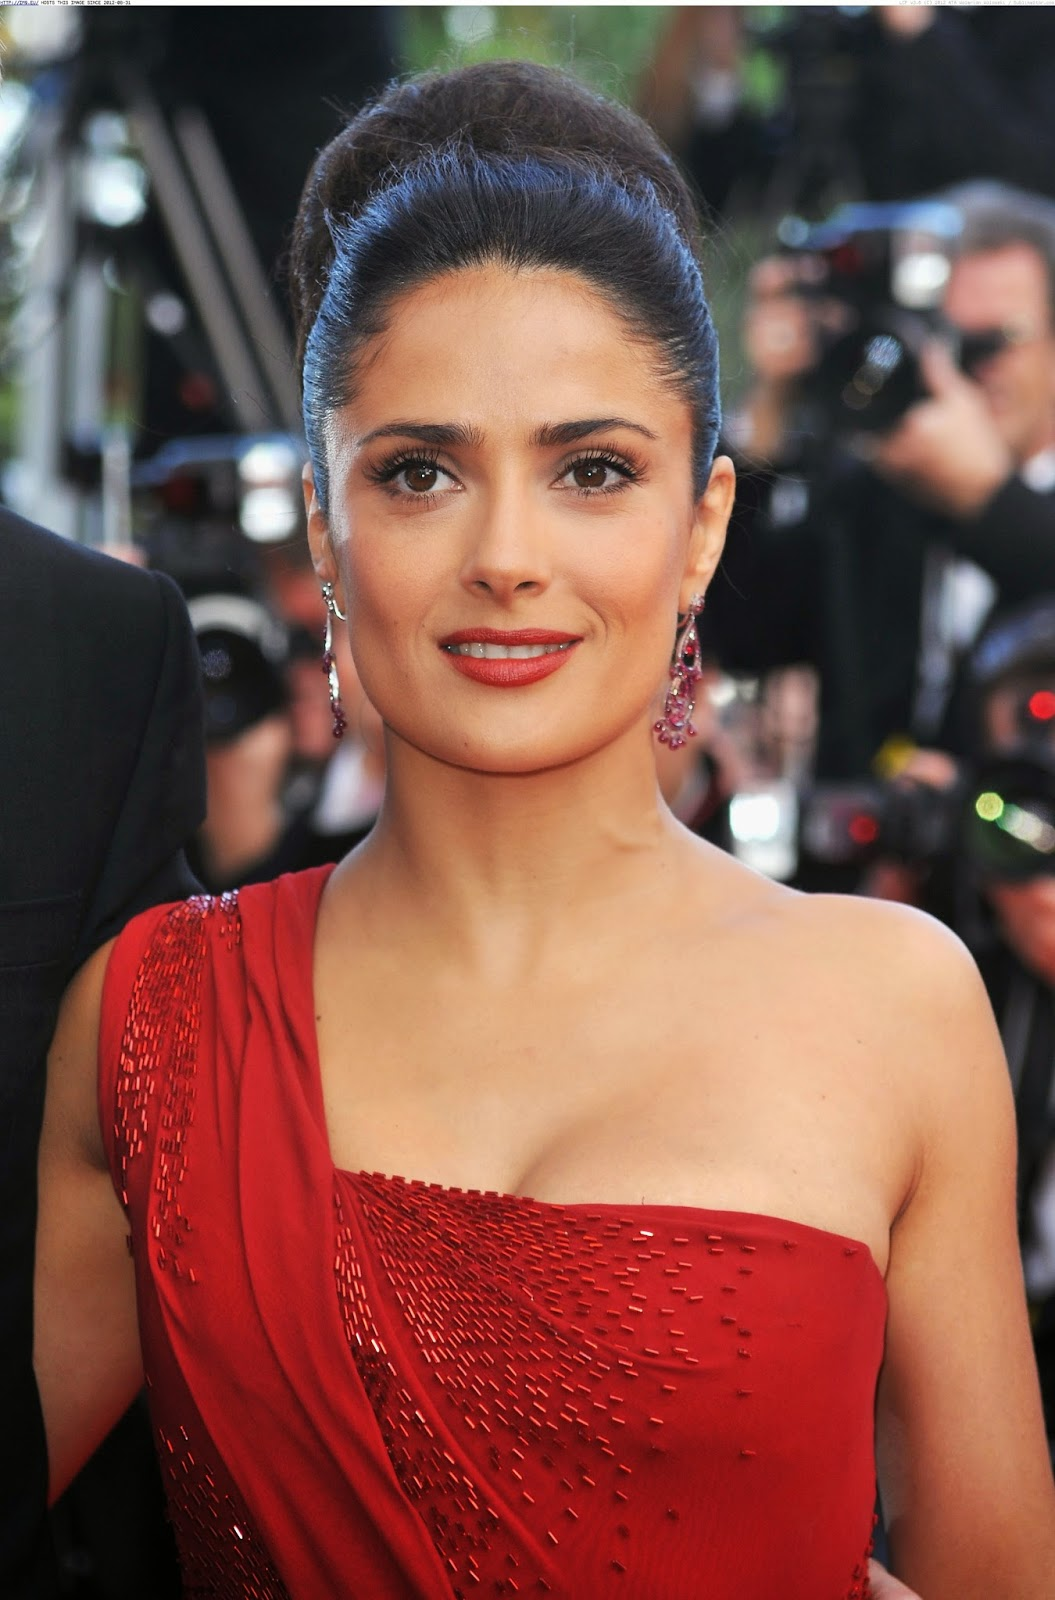 Salma Hayek Hd Wallpapers Free Download